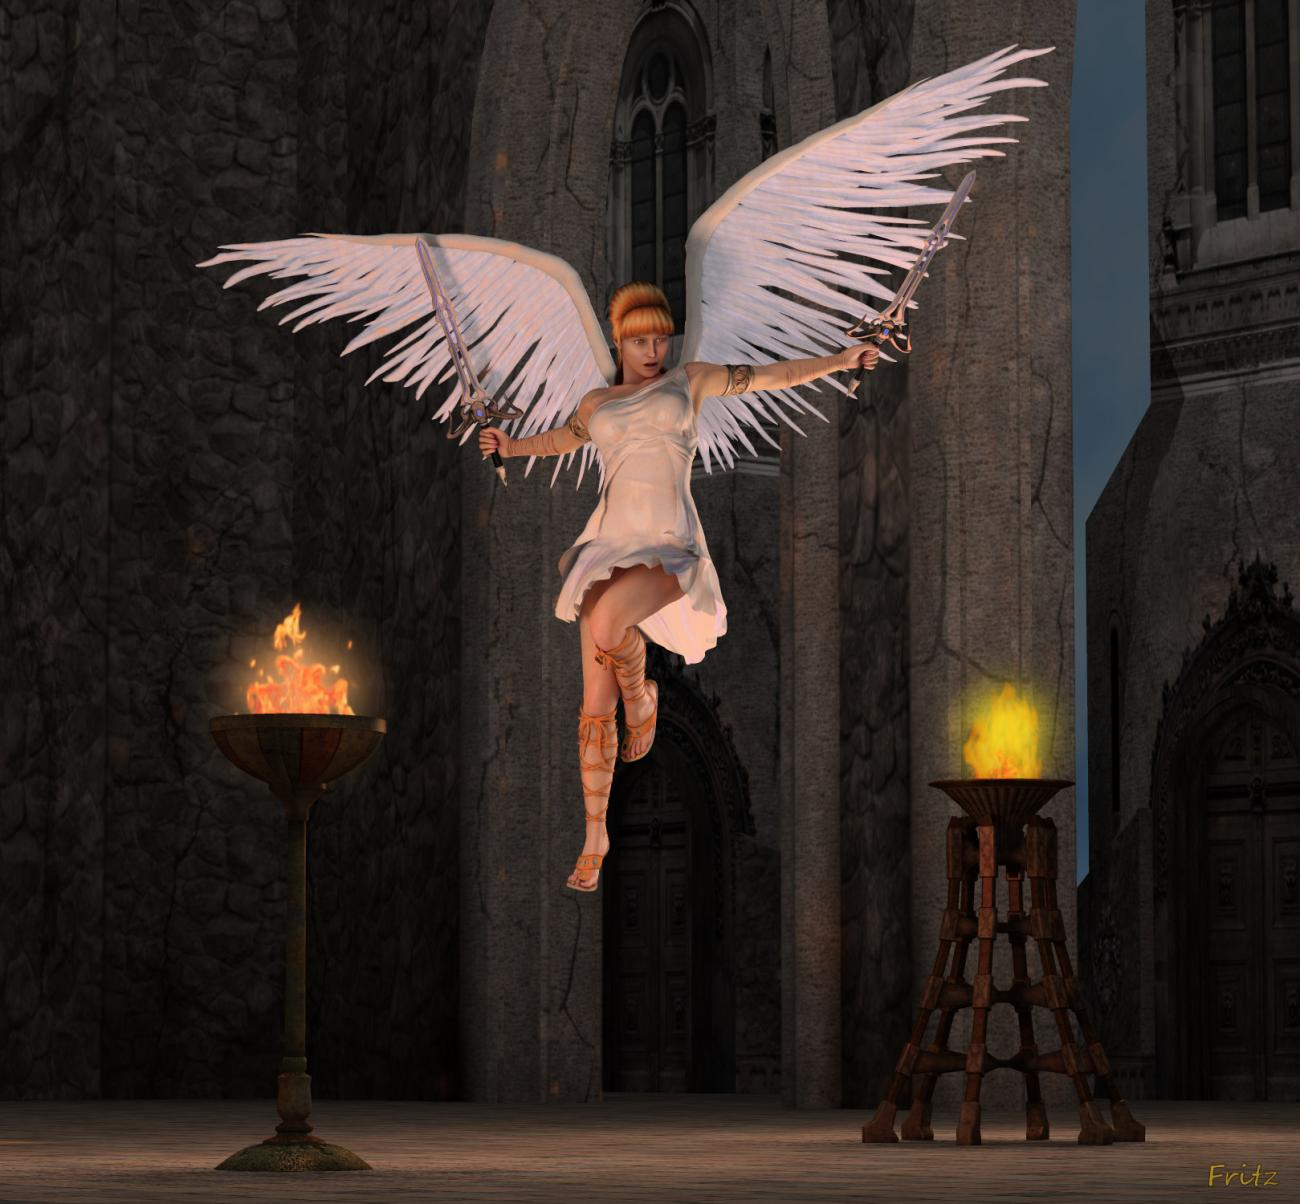 Angel Descending by Connatic